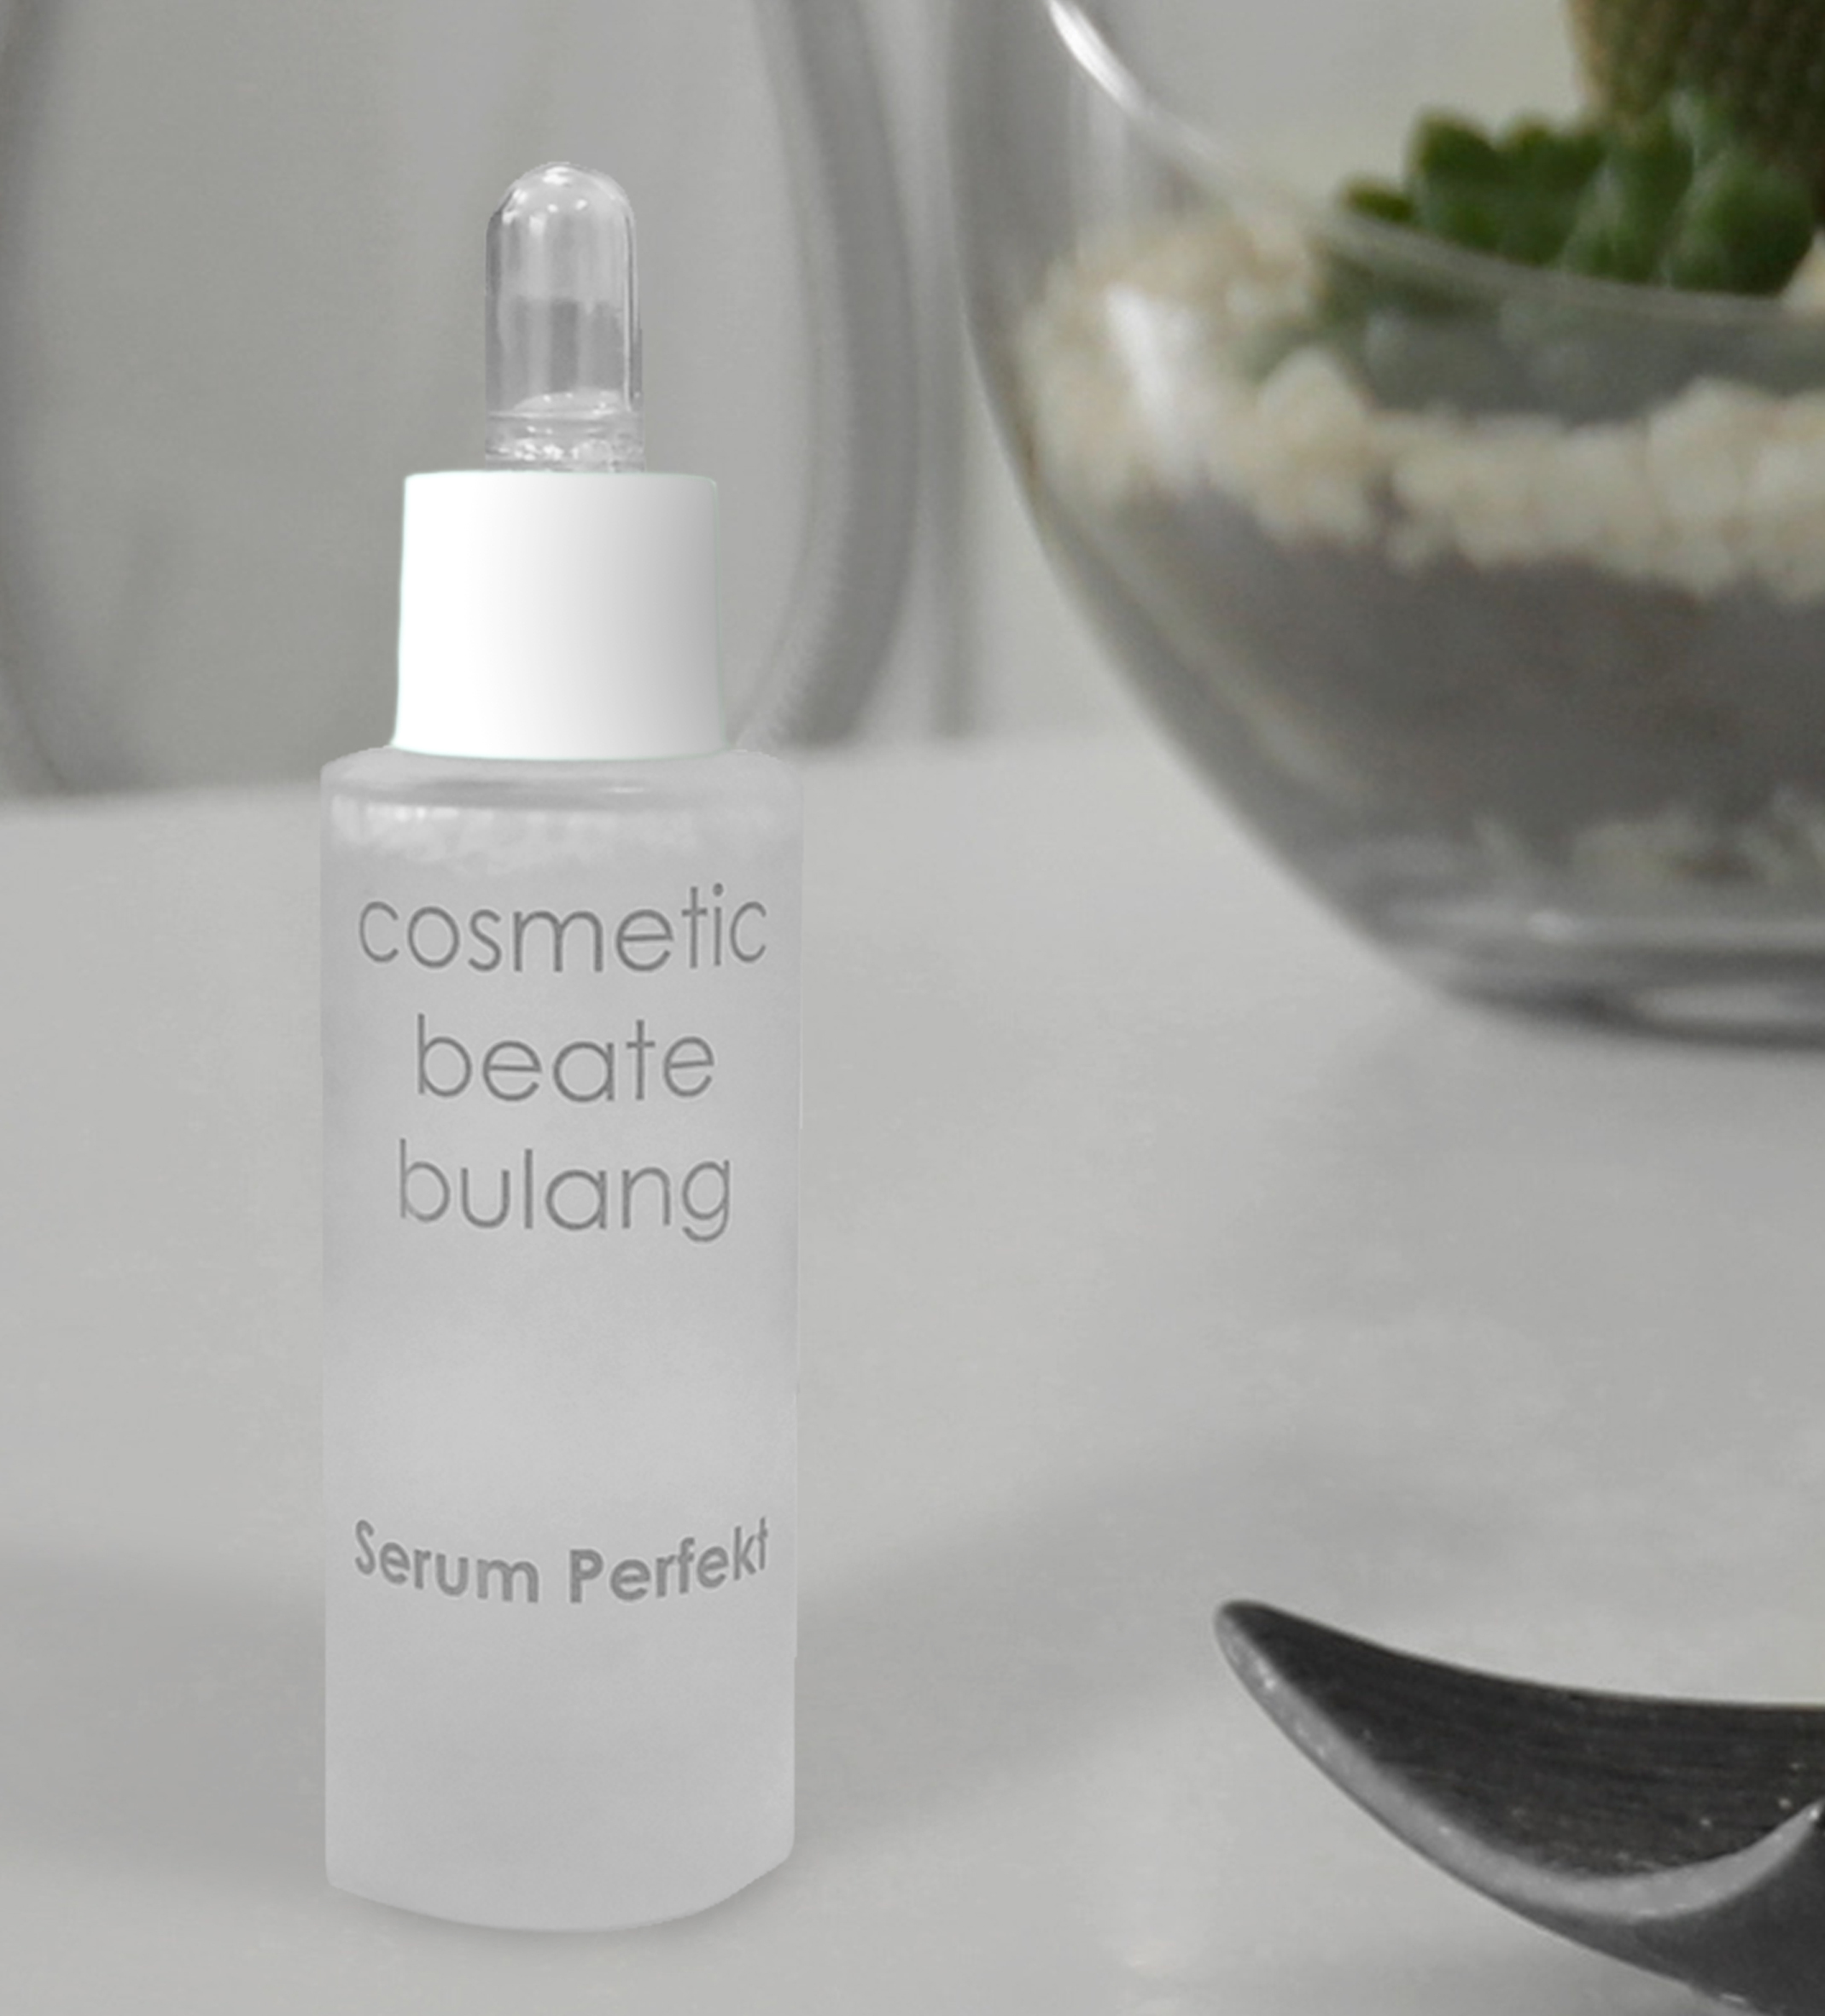 SerumPerfekt_Web_cosmetic_beate_bulang